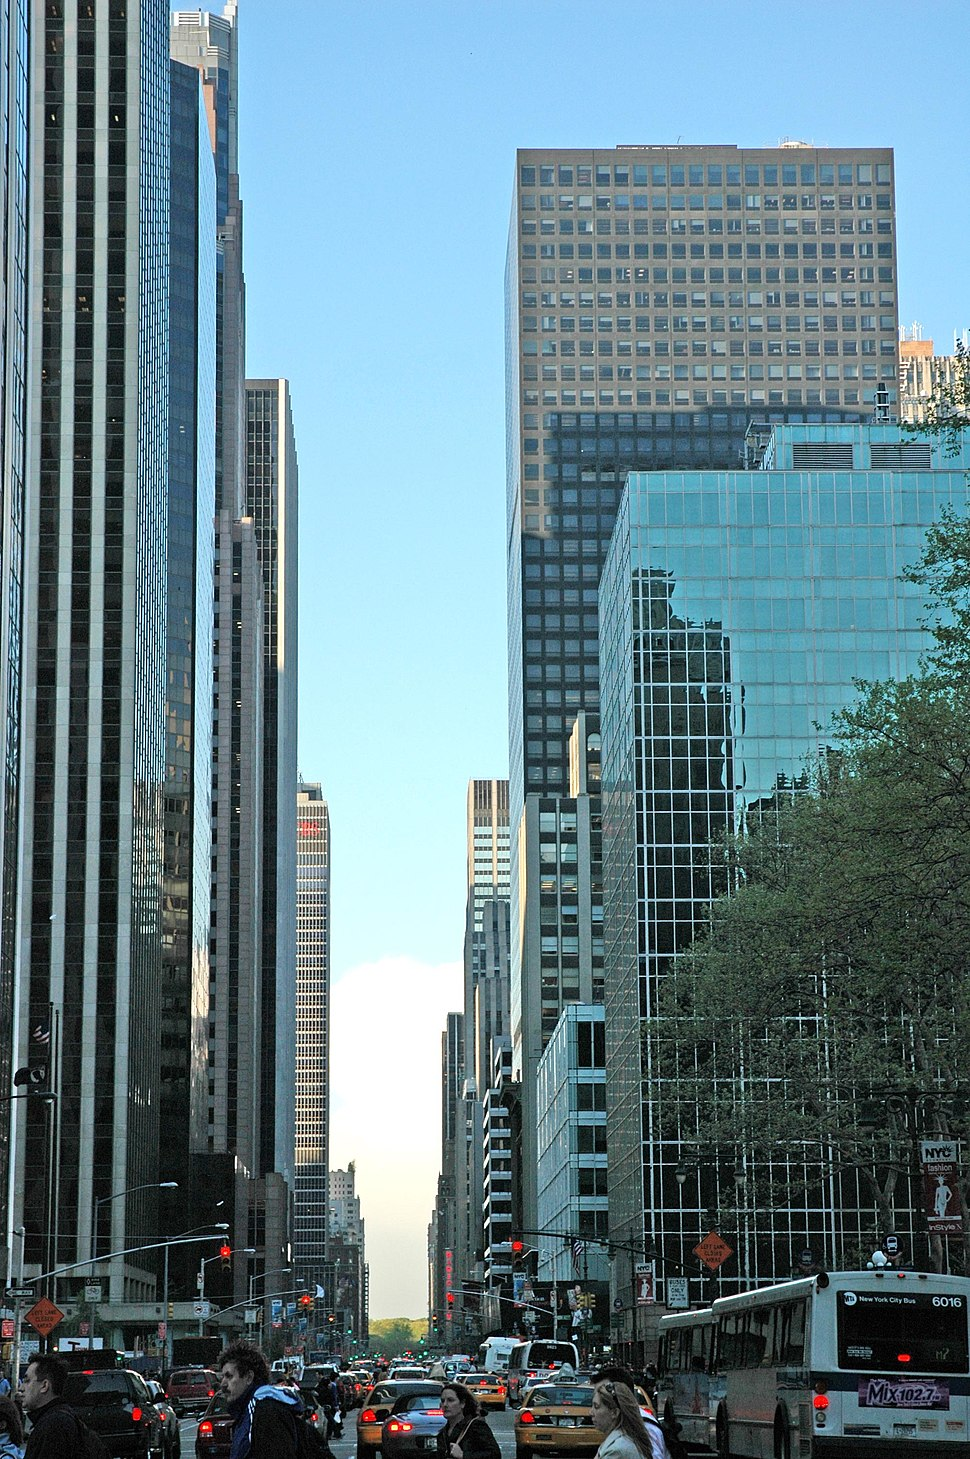 Sixth Avenue looking north